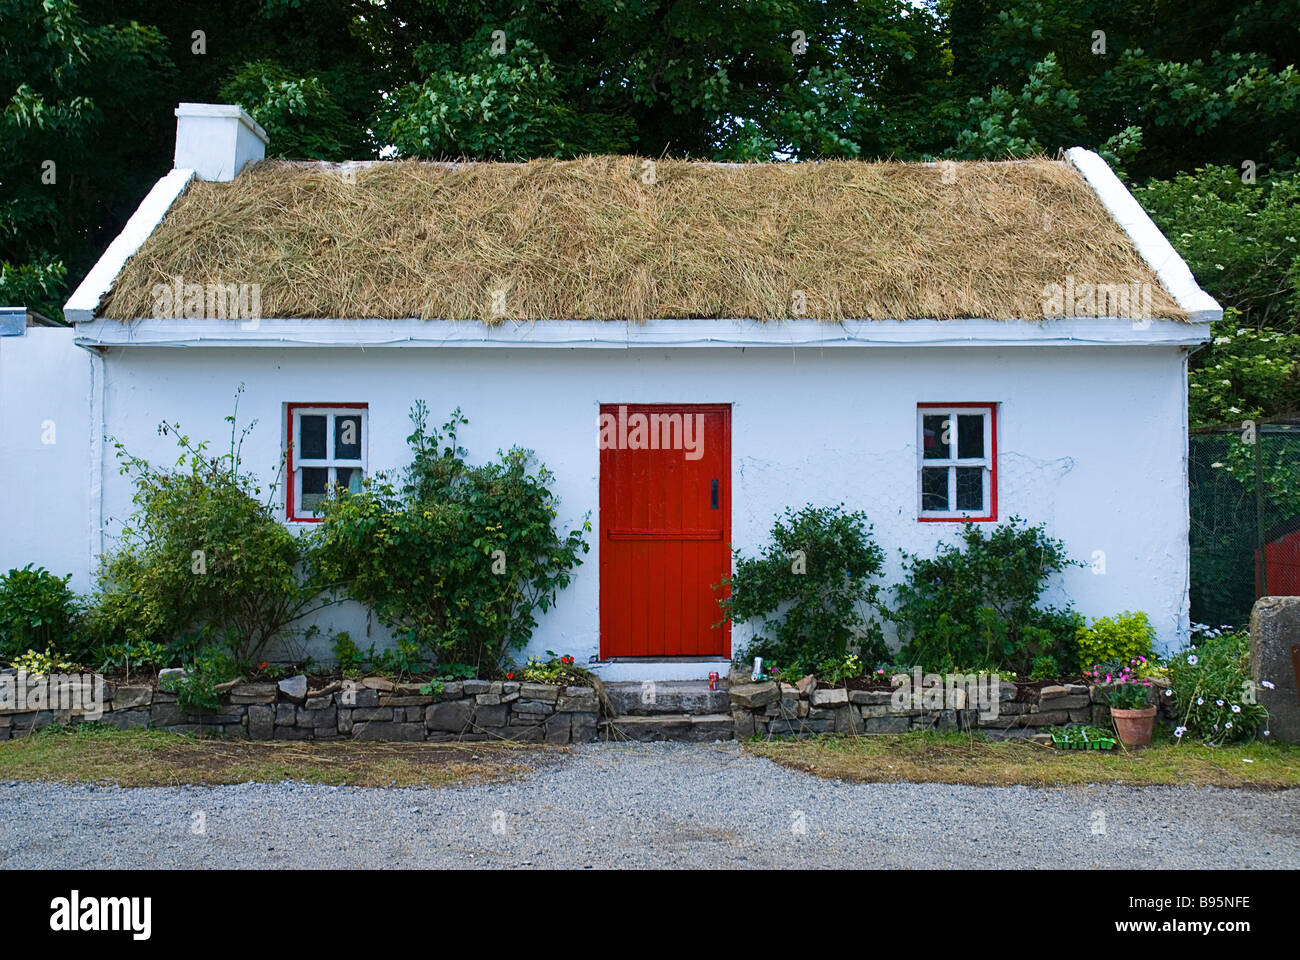 Ireland County Sligo Riverstown White Painted Cottage At Folk Park Thatched With Turf